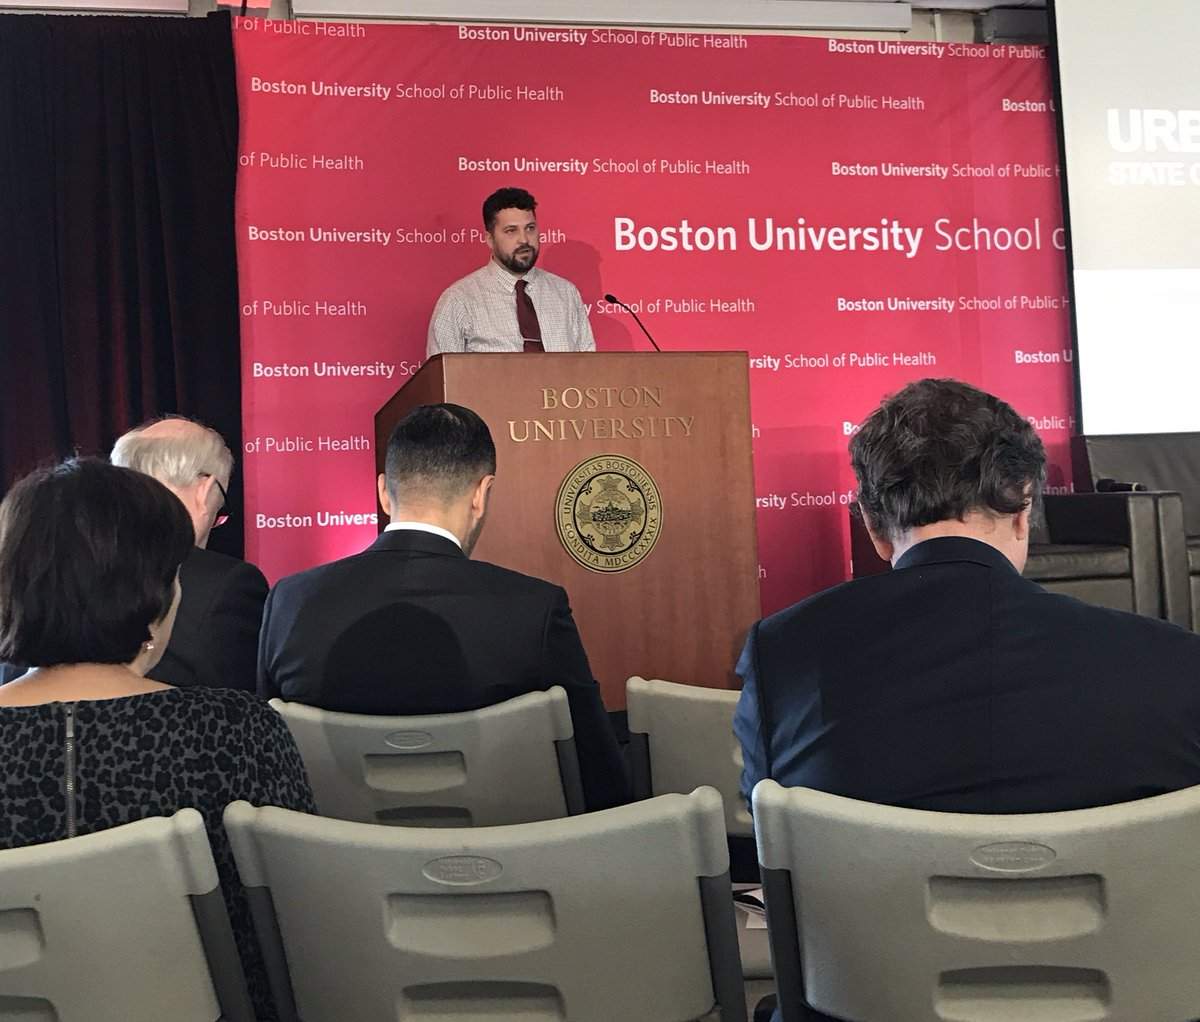 Crime and criminal justice: crime is heavily concentrated in urban areas, crime rates have dropped significantly over last 30 years, crime and violence aren't uniformly distributed across urban space - Matt Vogel #BUSPHSymposia @BUSPH @umsl @tudelft<br>http://pic.twitter.com/UIWMZKghK4